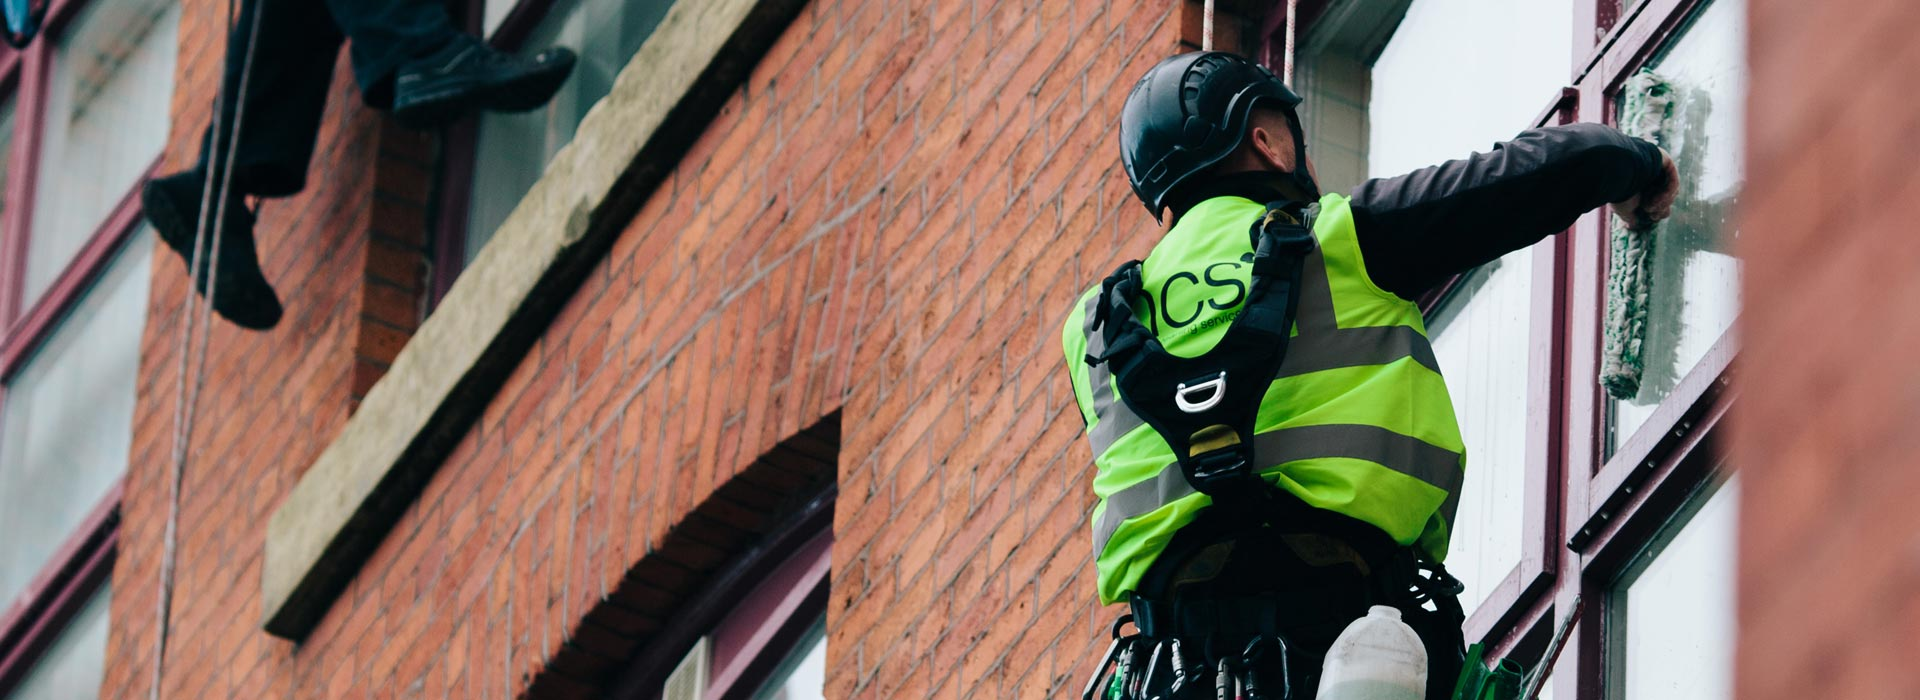 Abseiling and Rope Access Window Cleaning in the North West - HCS Cleaning Services